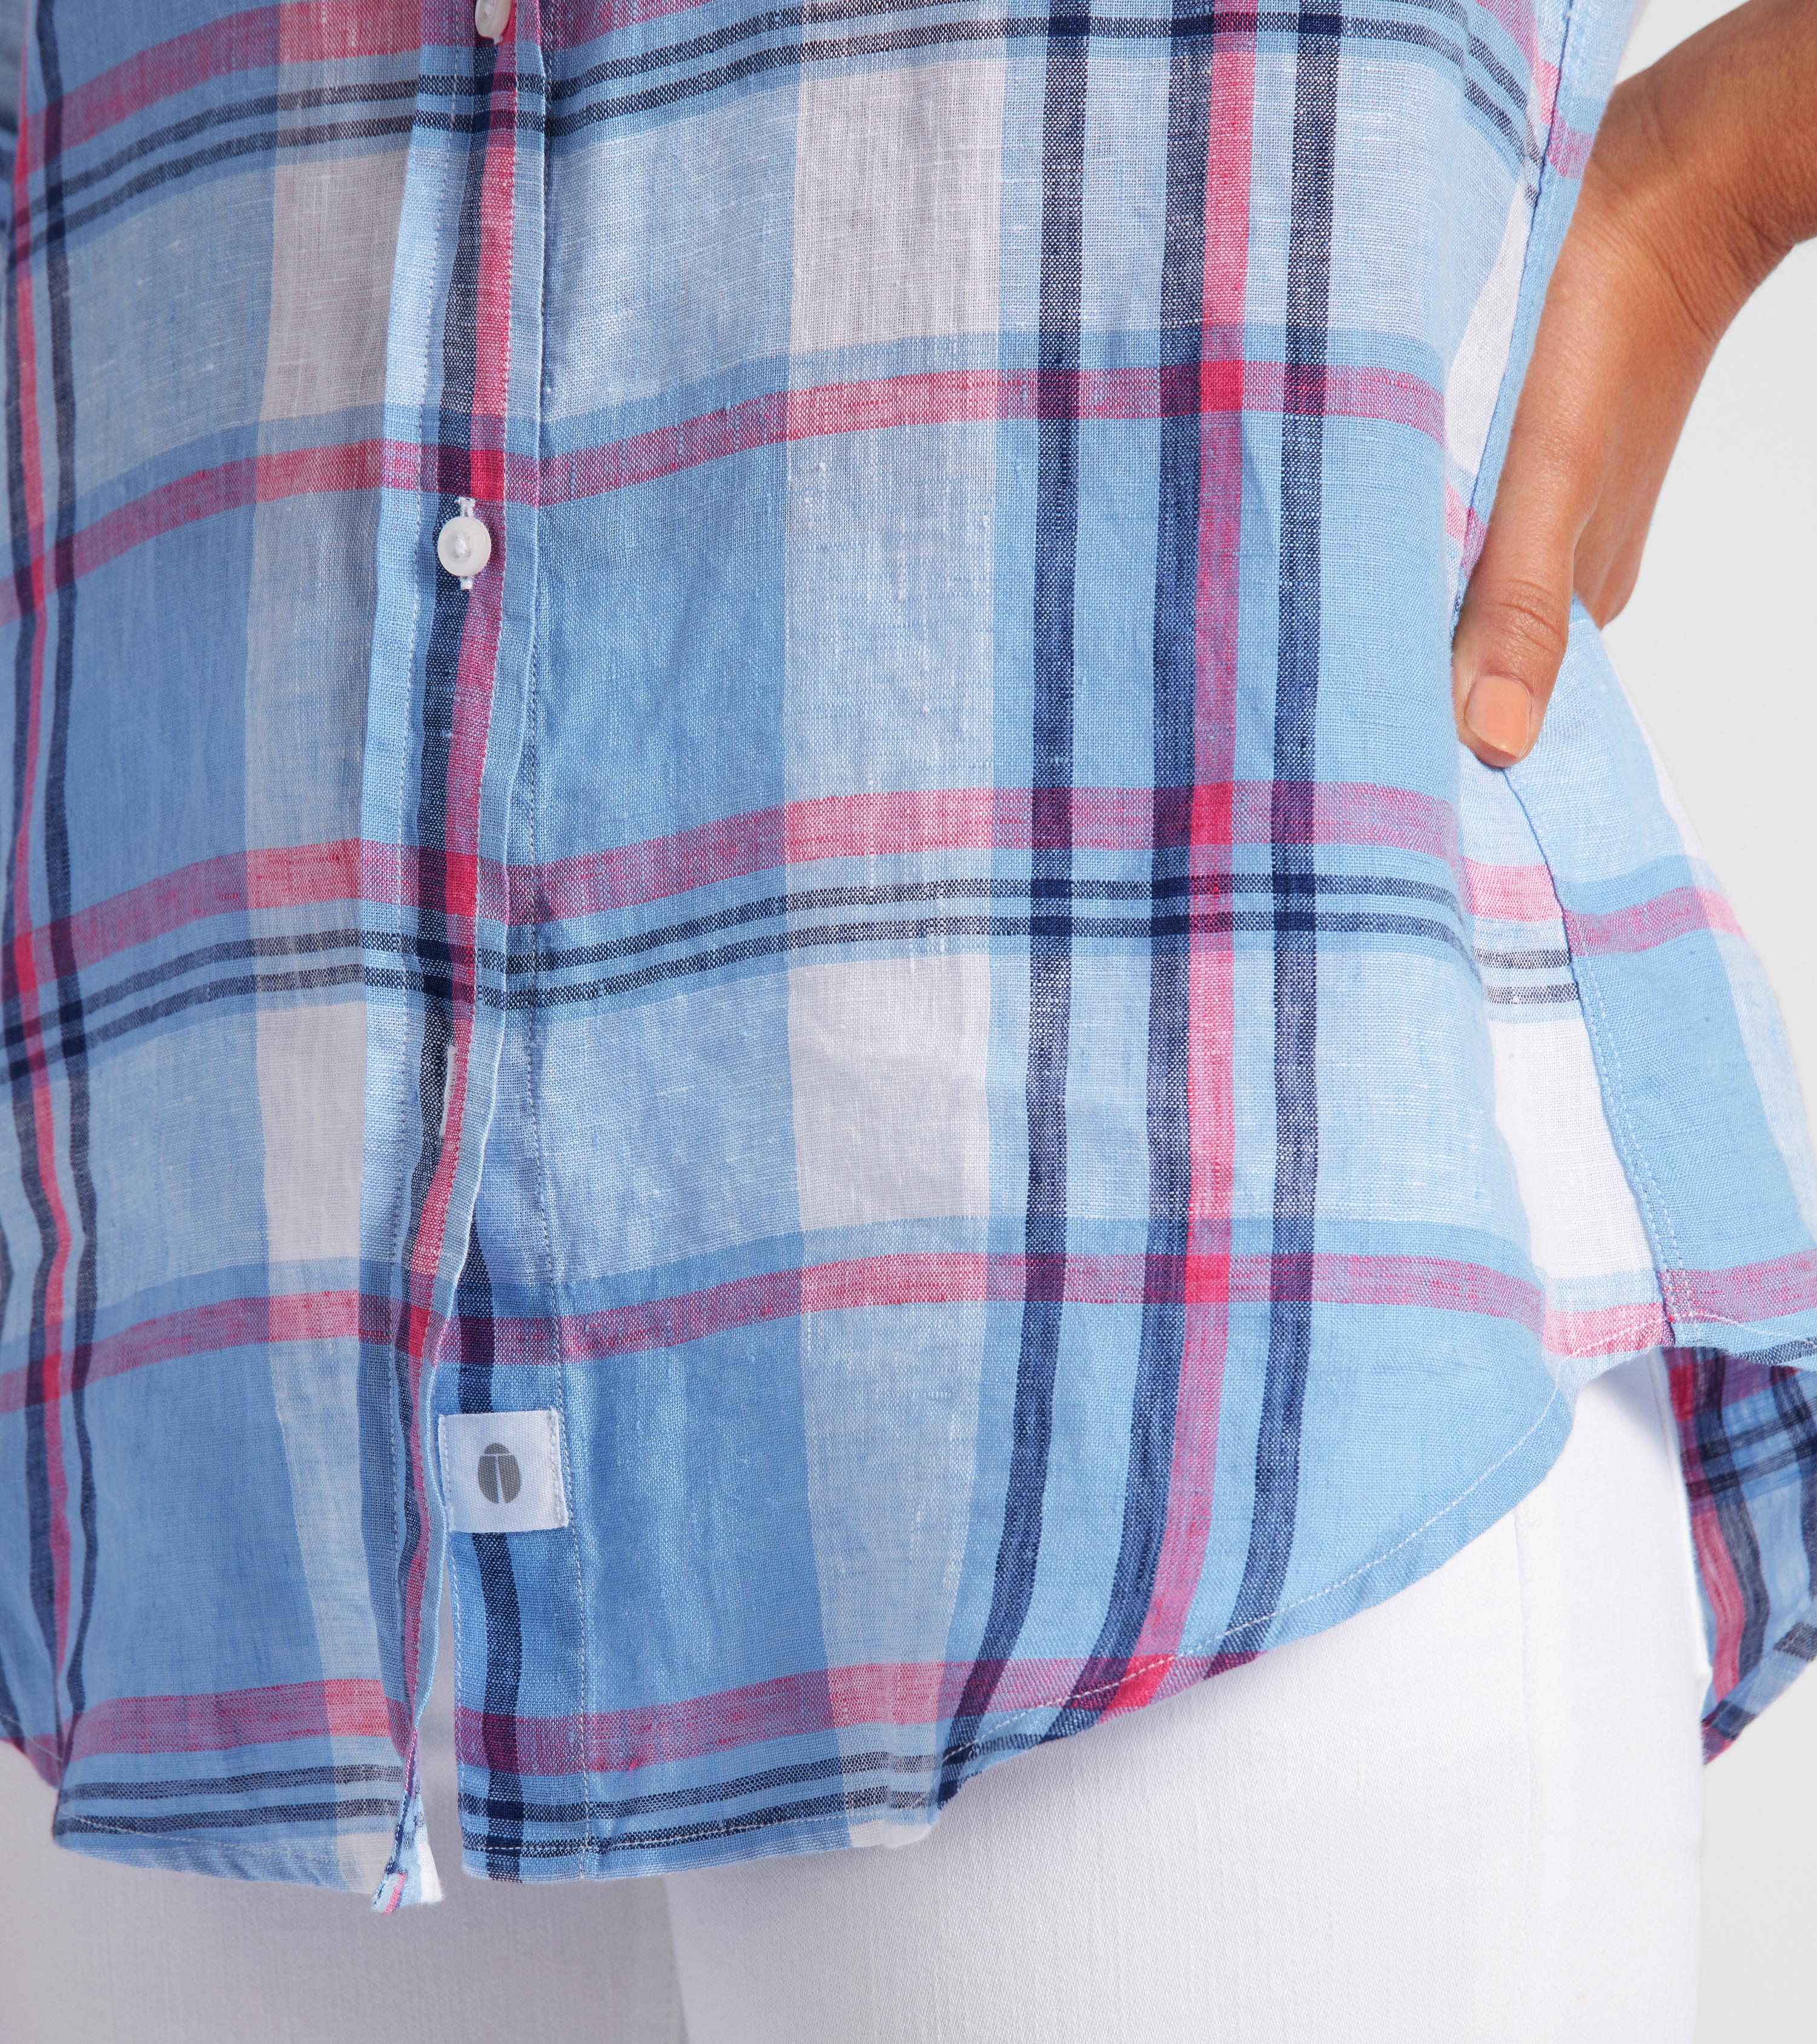 Image of The Hero Blue with Pink and Navy Plaid, Tumbled Linen